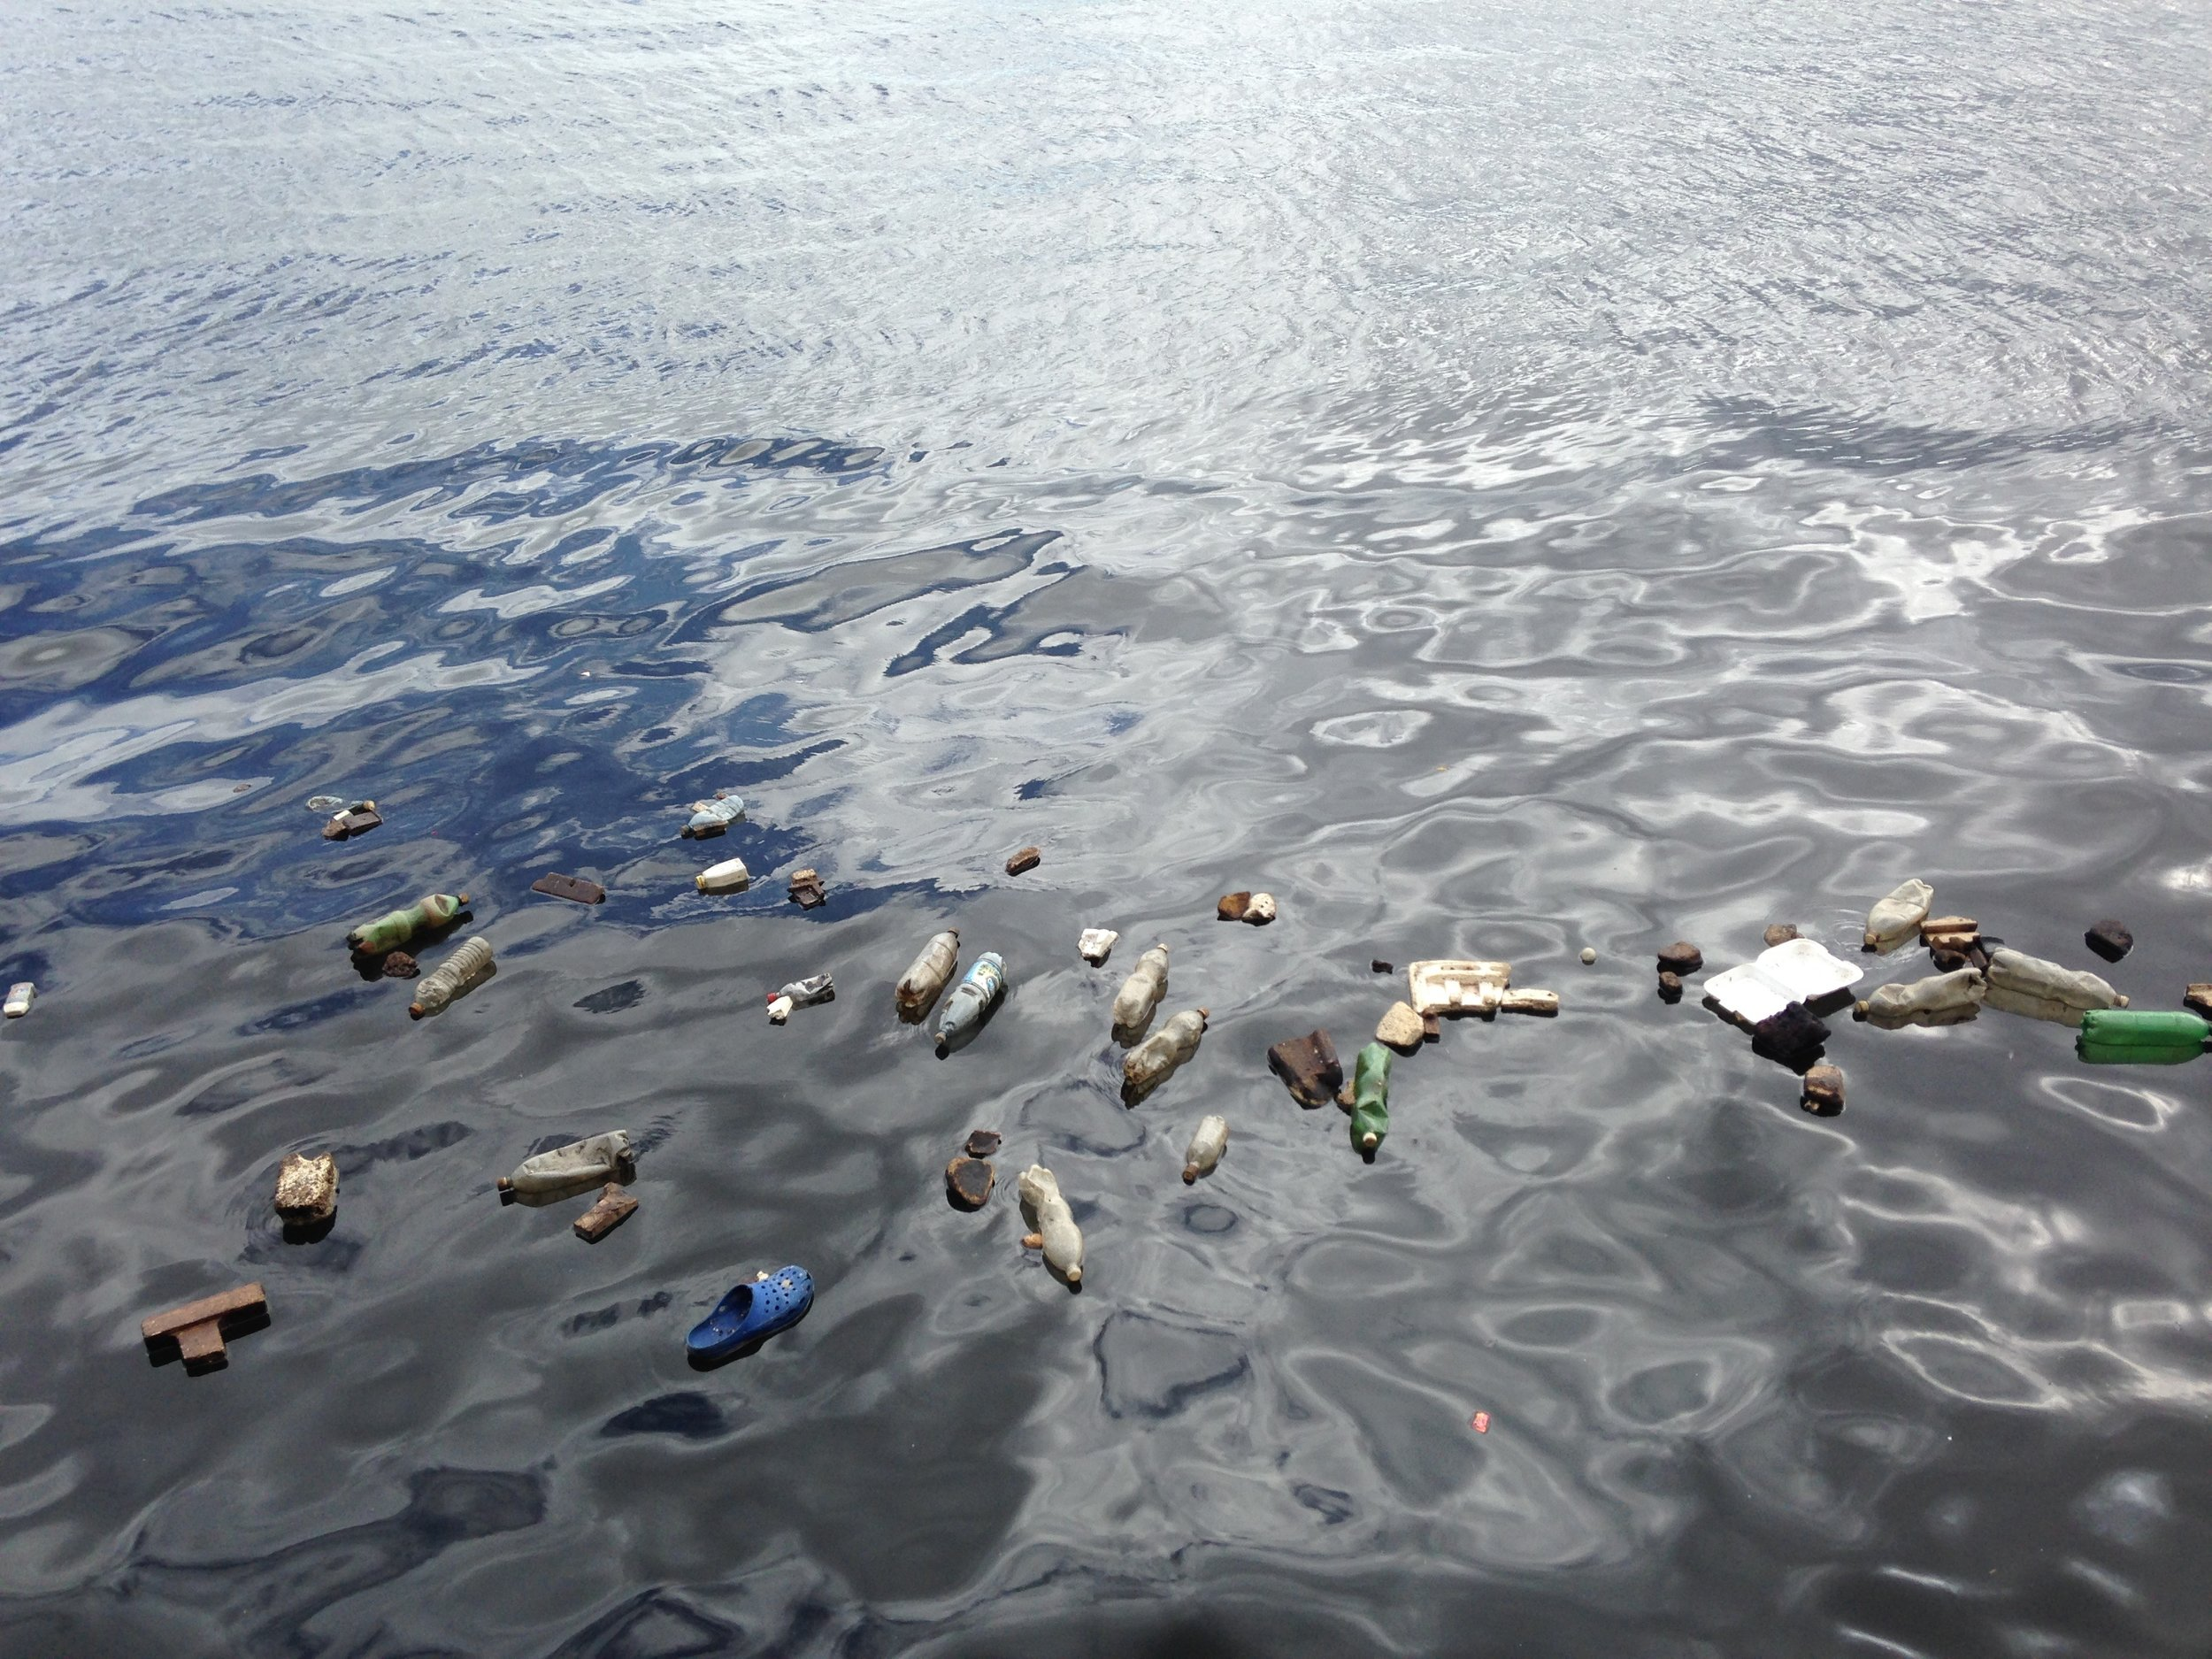 As plastic is generally buoyant, it floats at the surface, carried by wind, waves and currents. Photo: Pixabay.